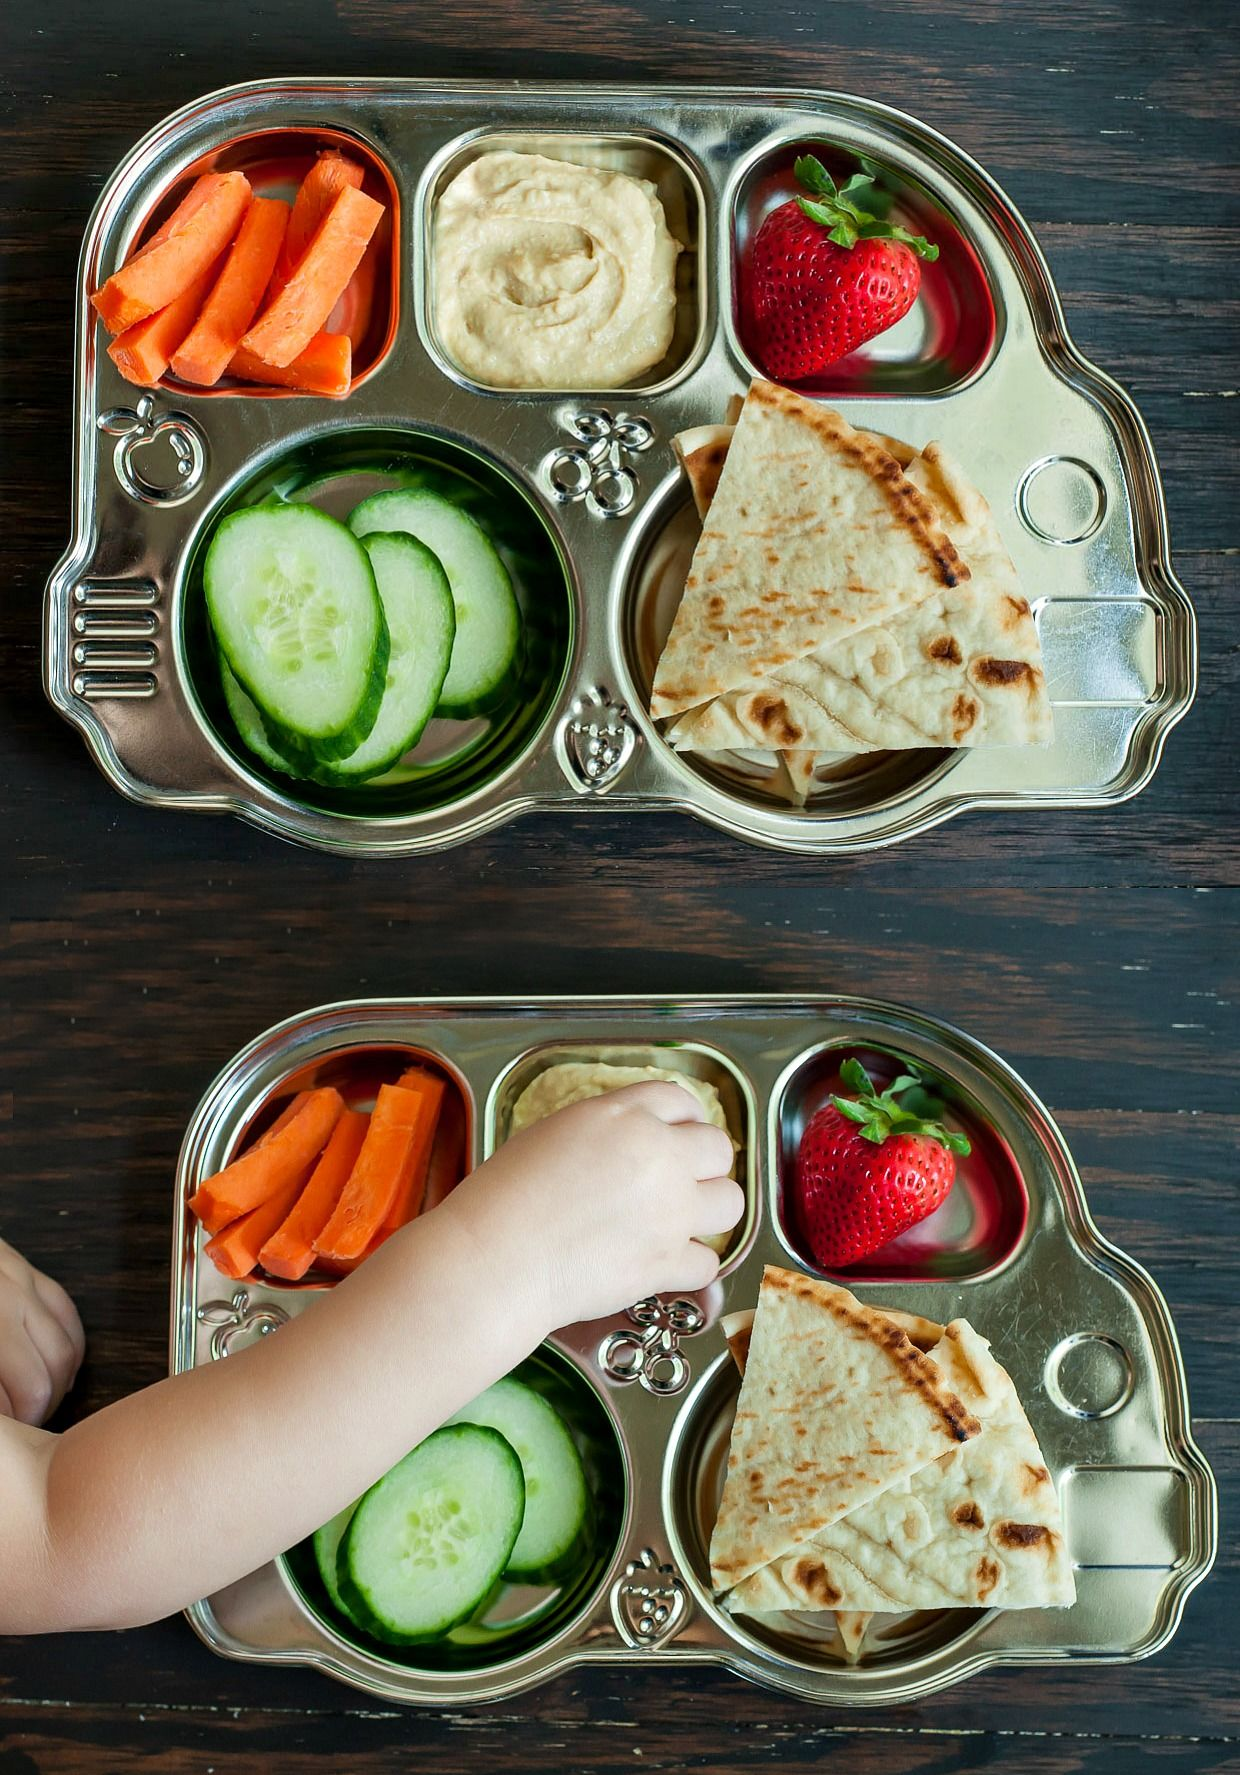 Deconstructed Toddler Snack Plate with Hummus + Veggies -- this has been so so helpful for getting my kiddo to try new things and eat more veggies!